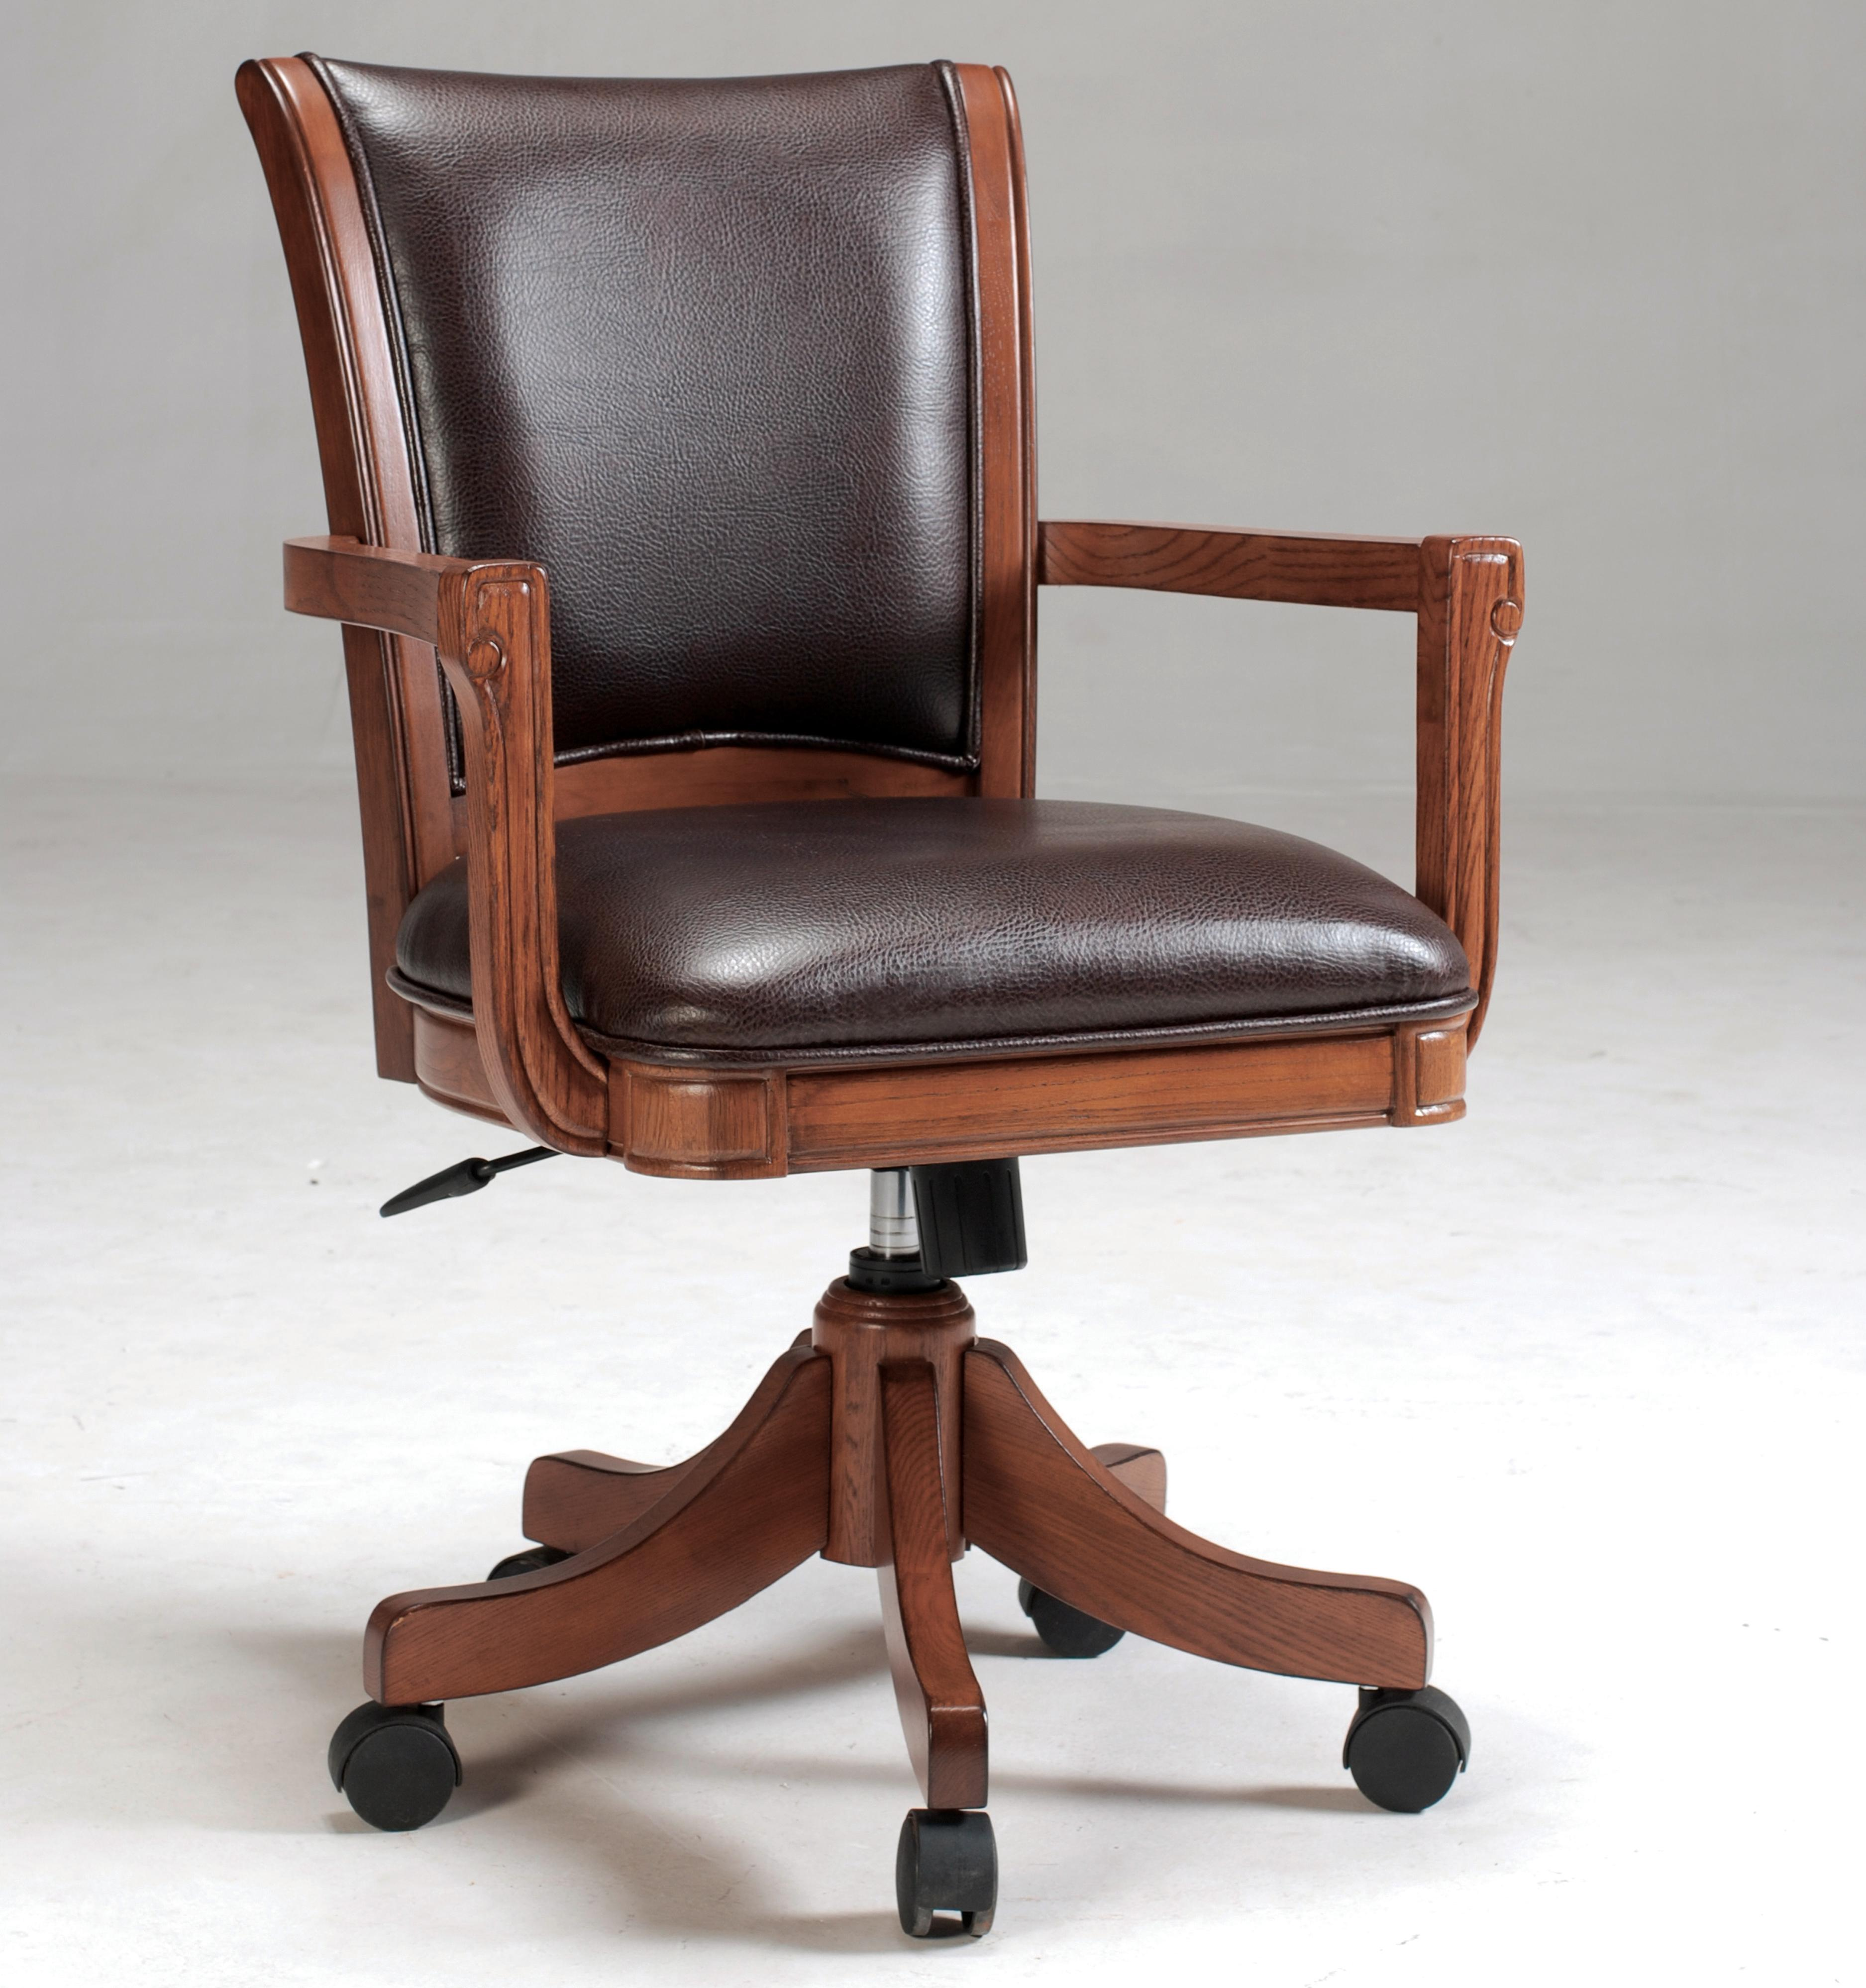 Hillsdale Park View Caster Game Chair - Item Number: 4186-800